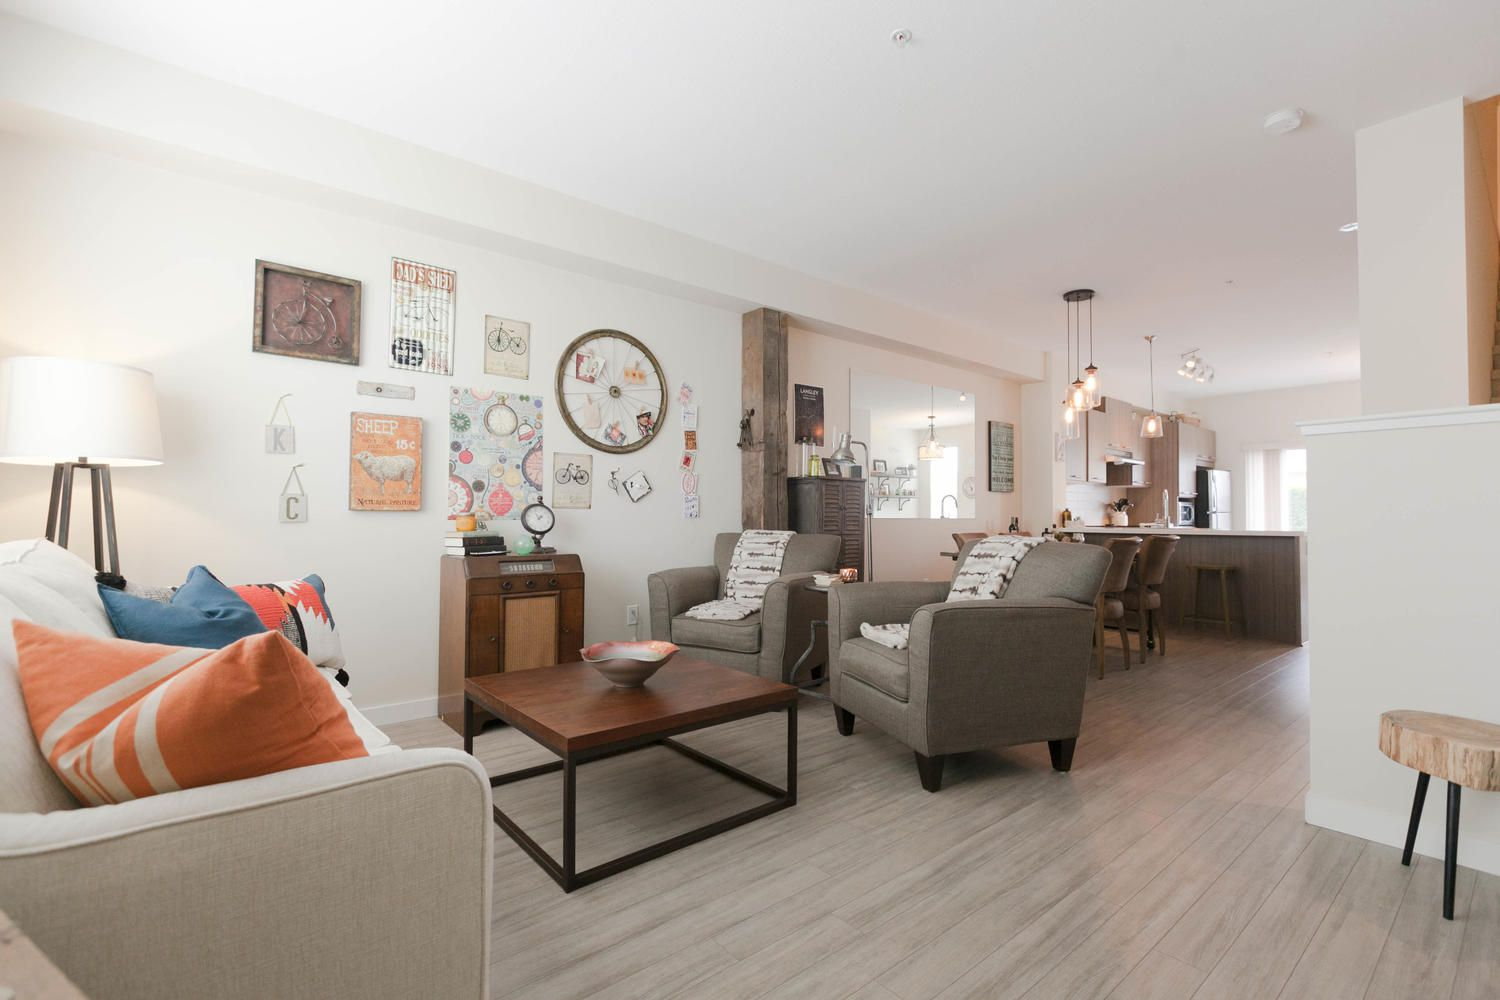 """Photo 6: Photos: 97 7938 209 Street in Langley: Willoughby Heights Townhouse for sale in """"Red Maple Park"""" : MLS®# R2260950"""